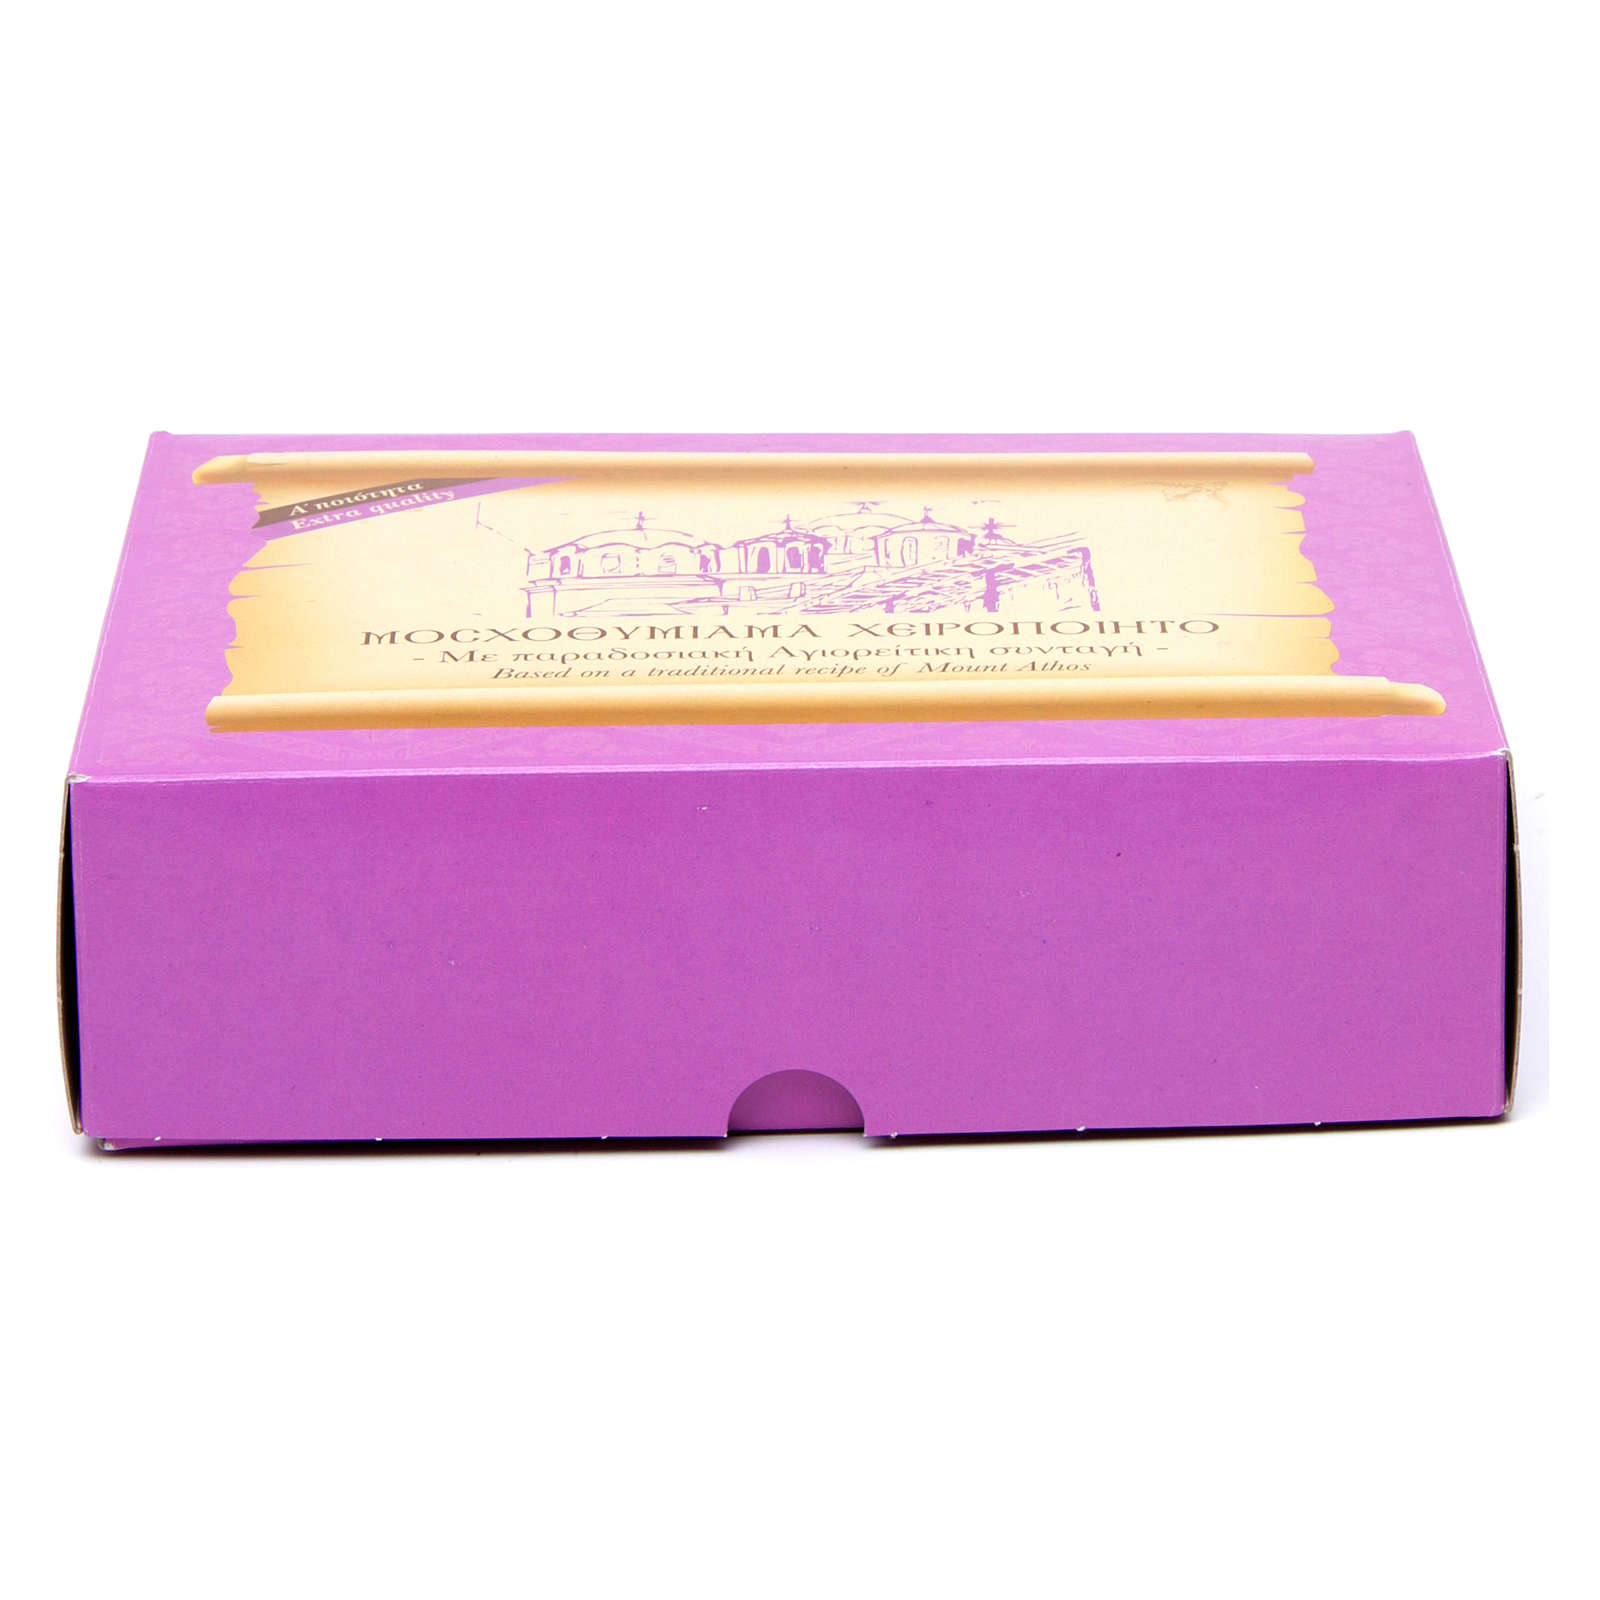 Carnation-scented Greek incense 1 kg 3